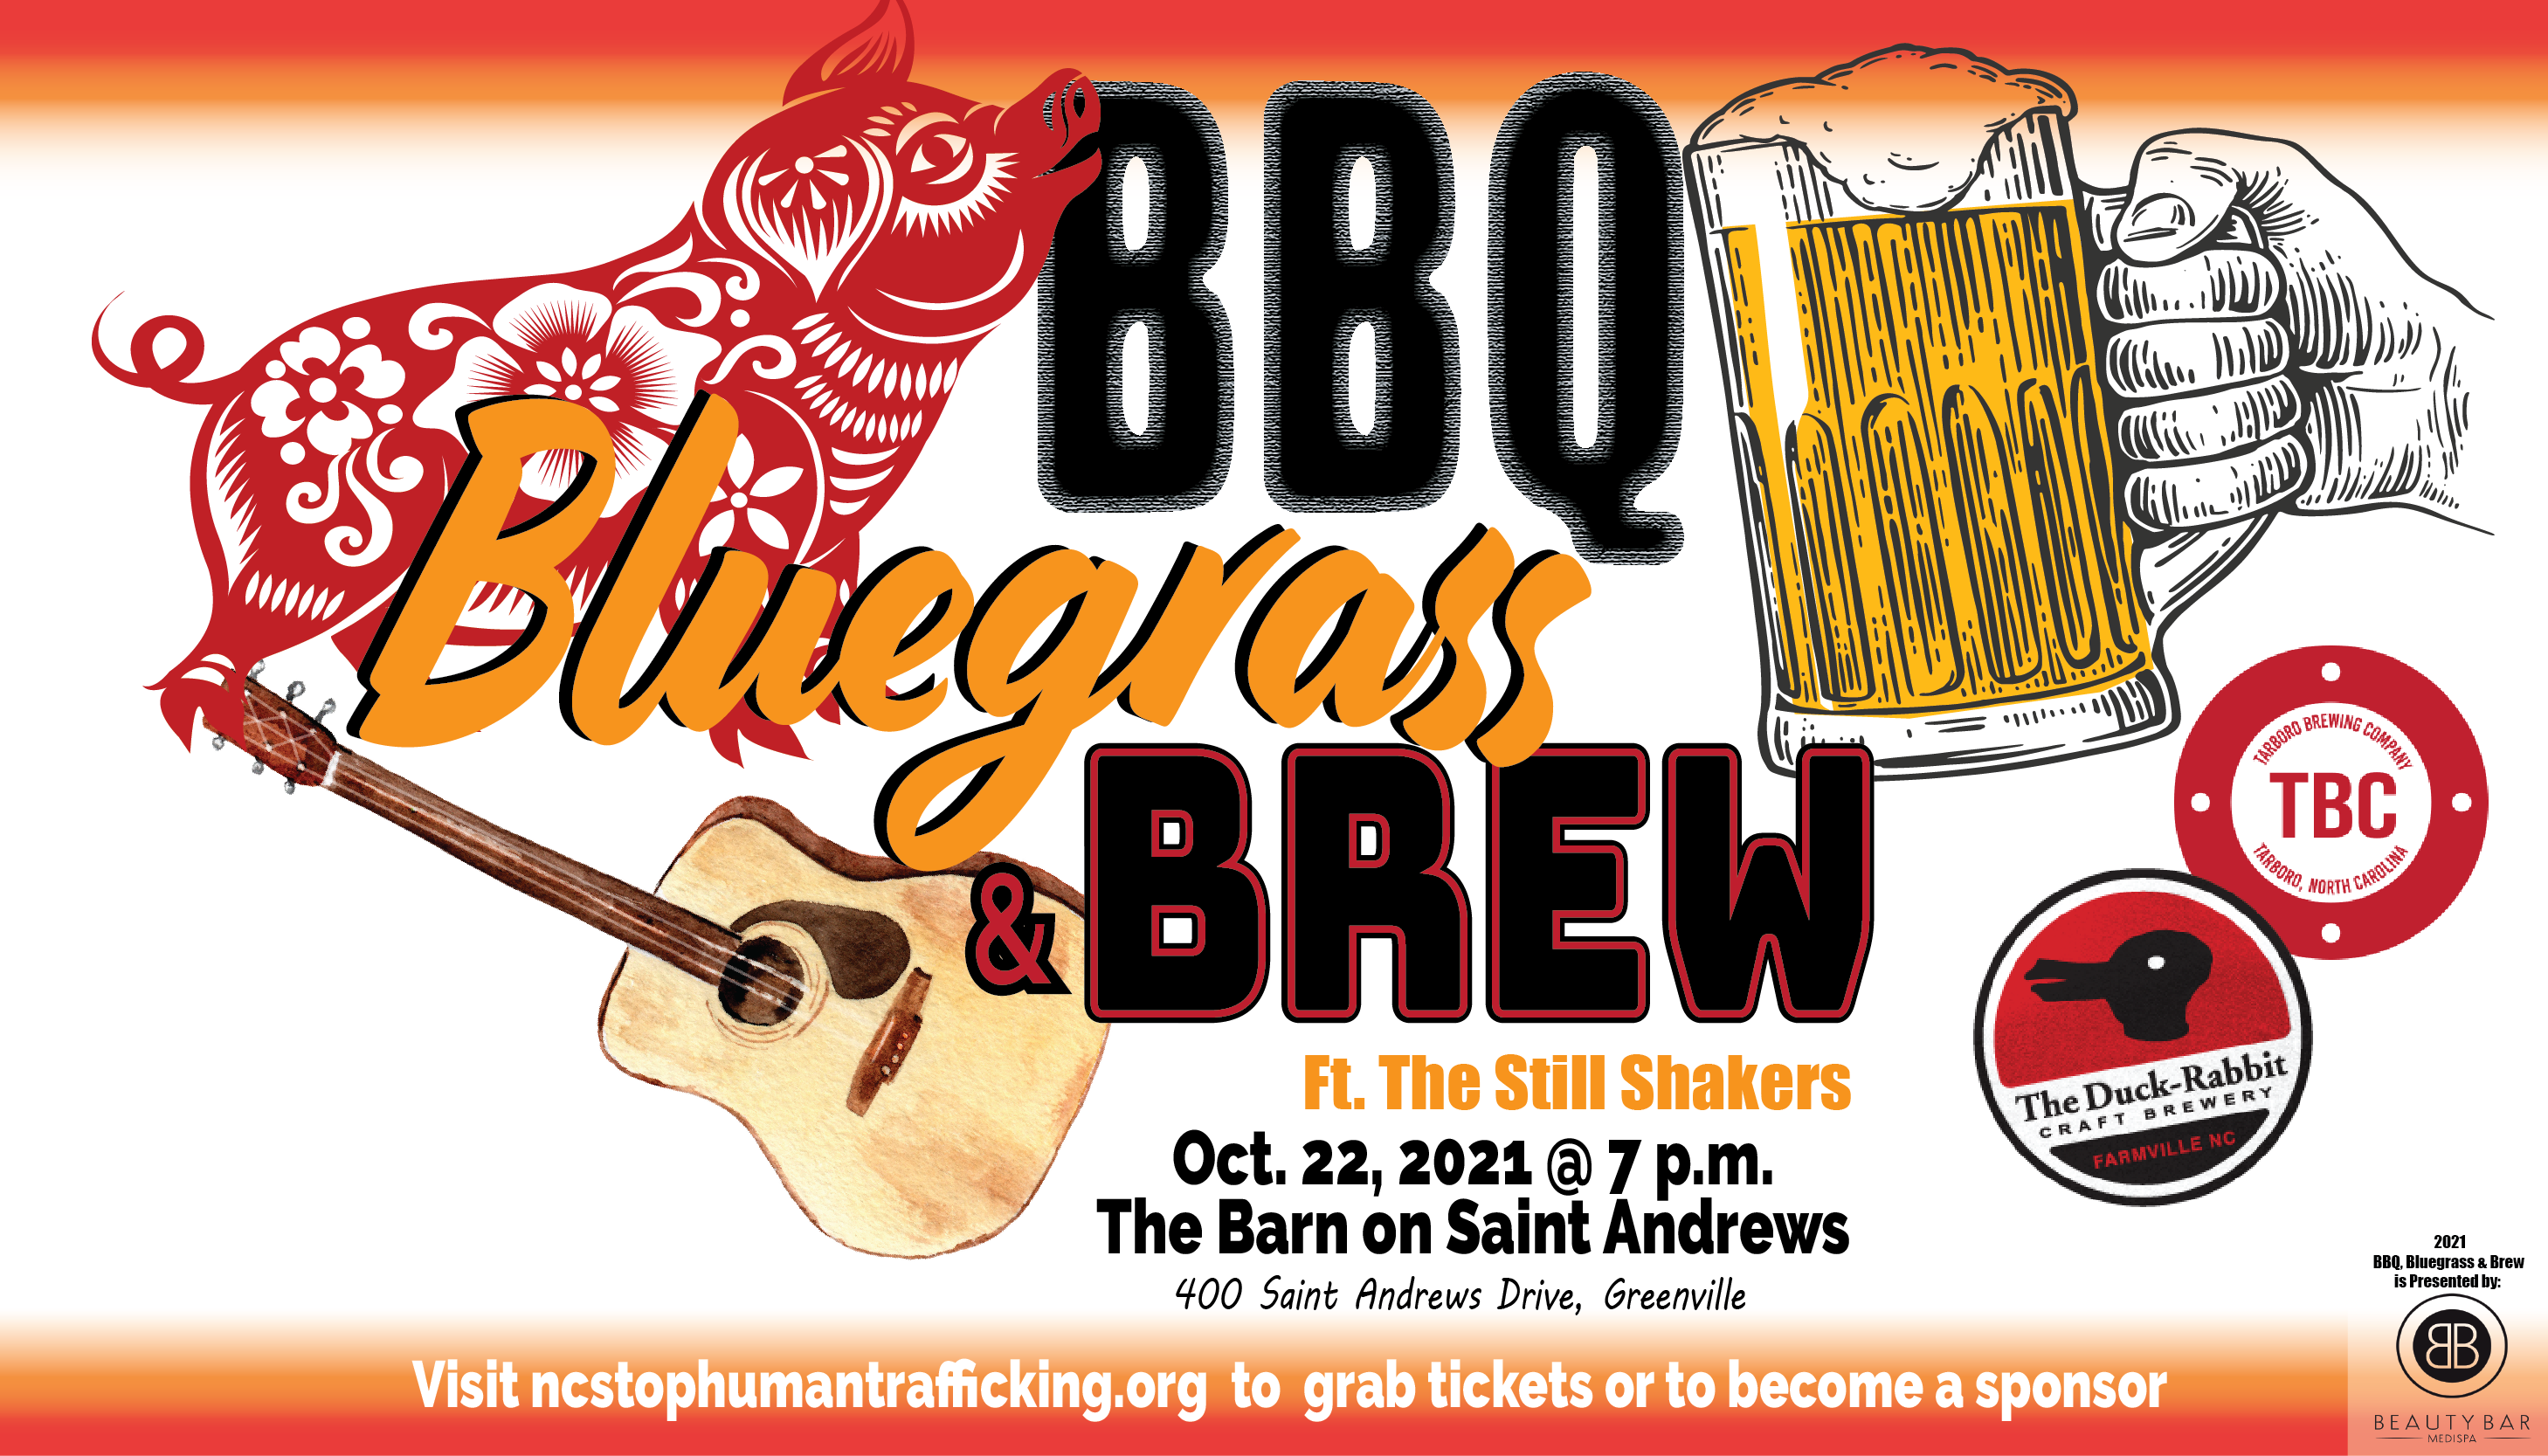 BBQ, Bluegrass and Brew 2021 event flyer NC Stop Human Trafficking